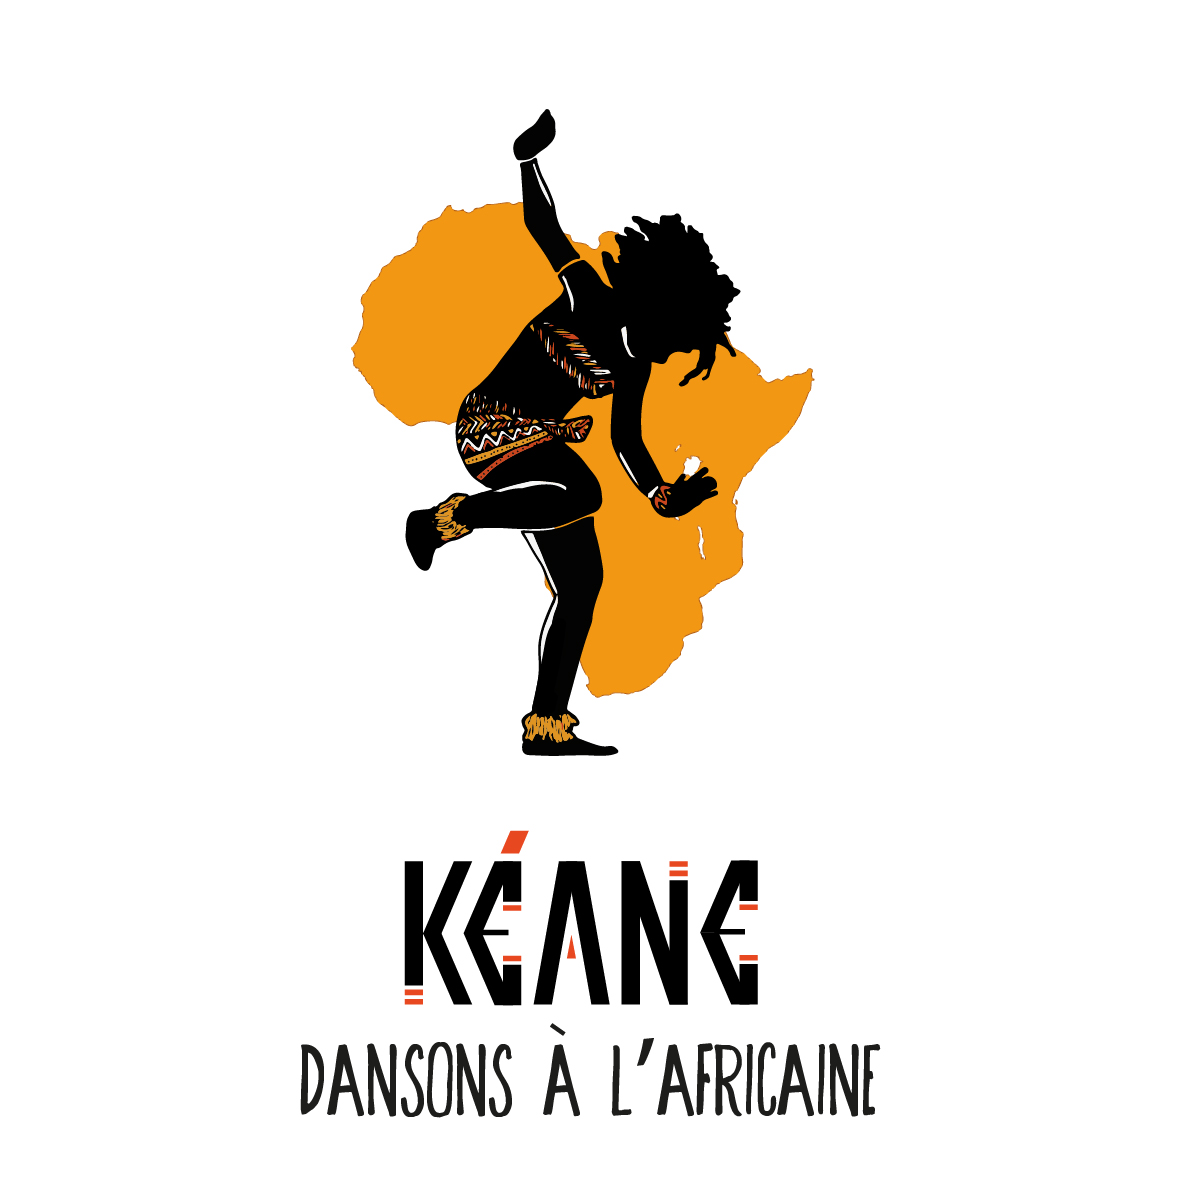 Association - Kéane, Dansons à l'africaine